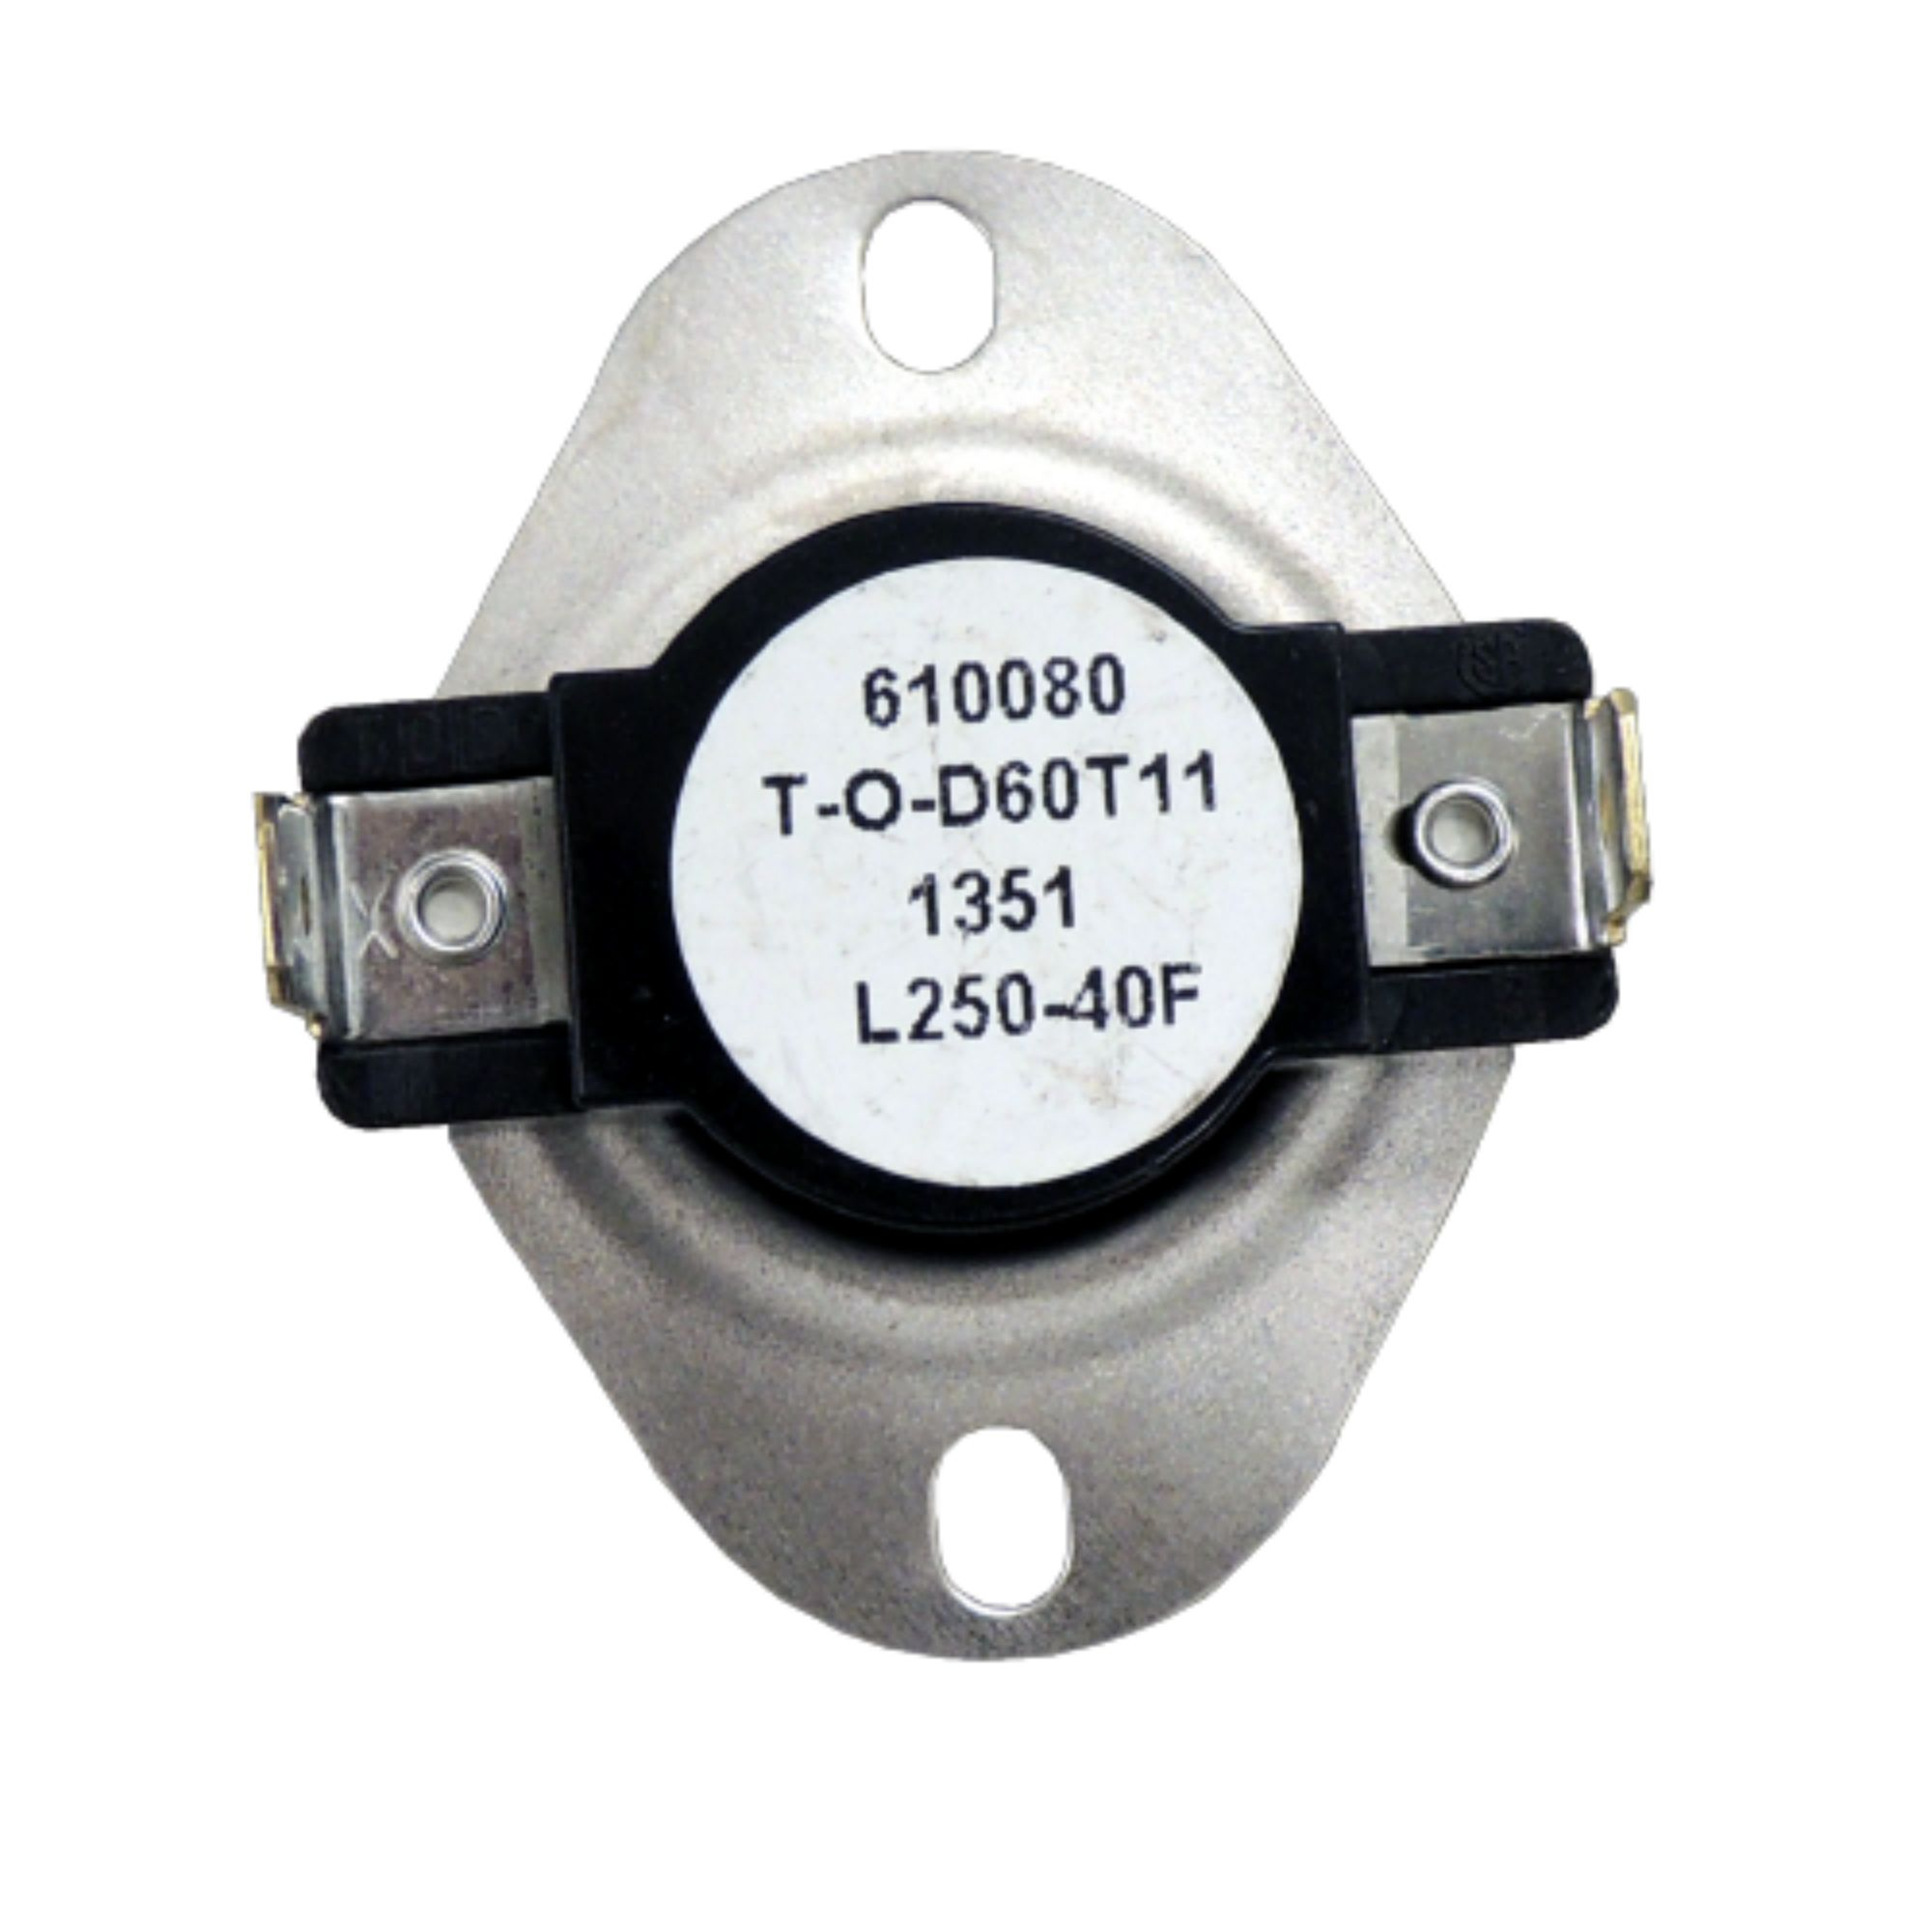 L250 Genuine OEM Supco Thermostat 60T11 Style 610080